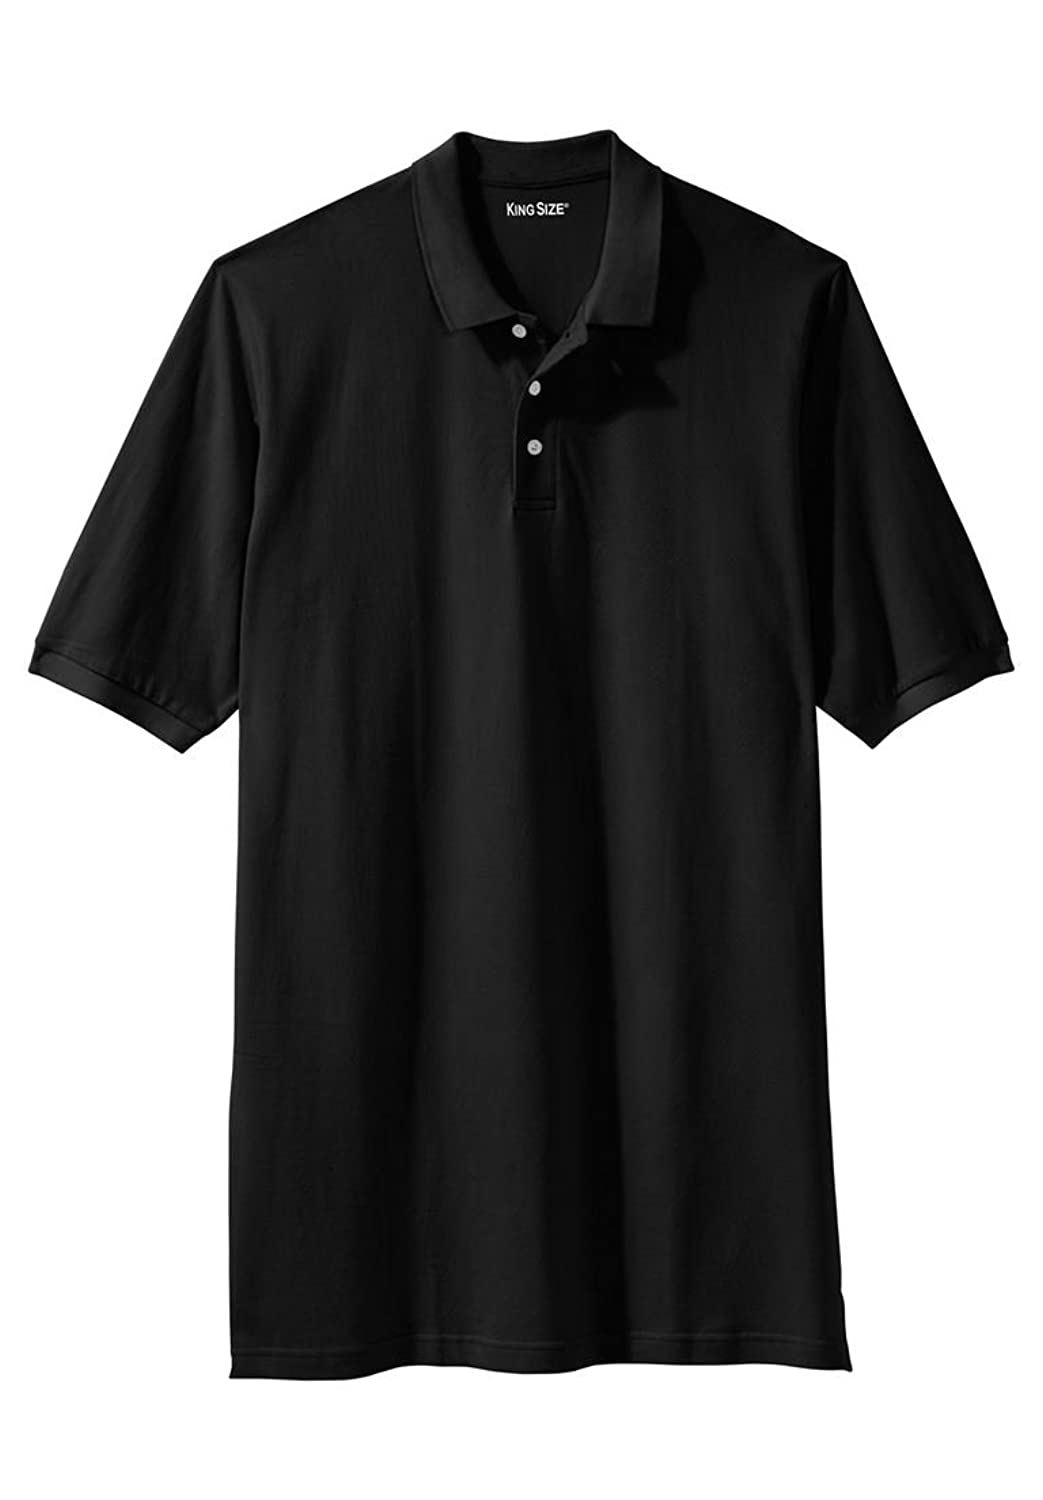 KingSize Men's Big & Tall Longer-Length Short-Sleeve Pique Polo